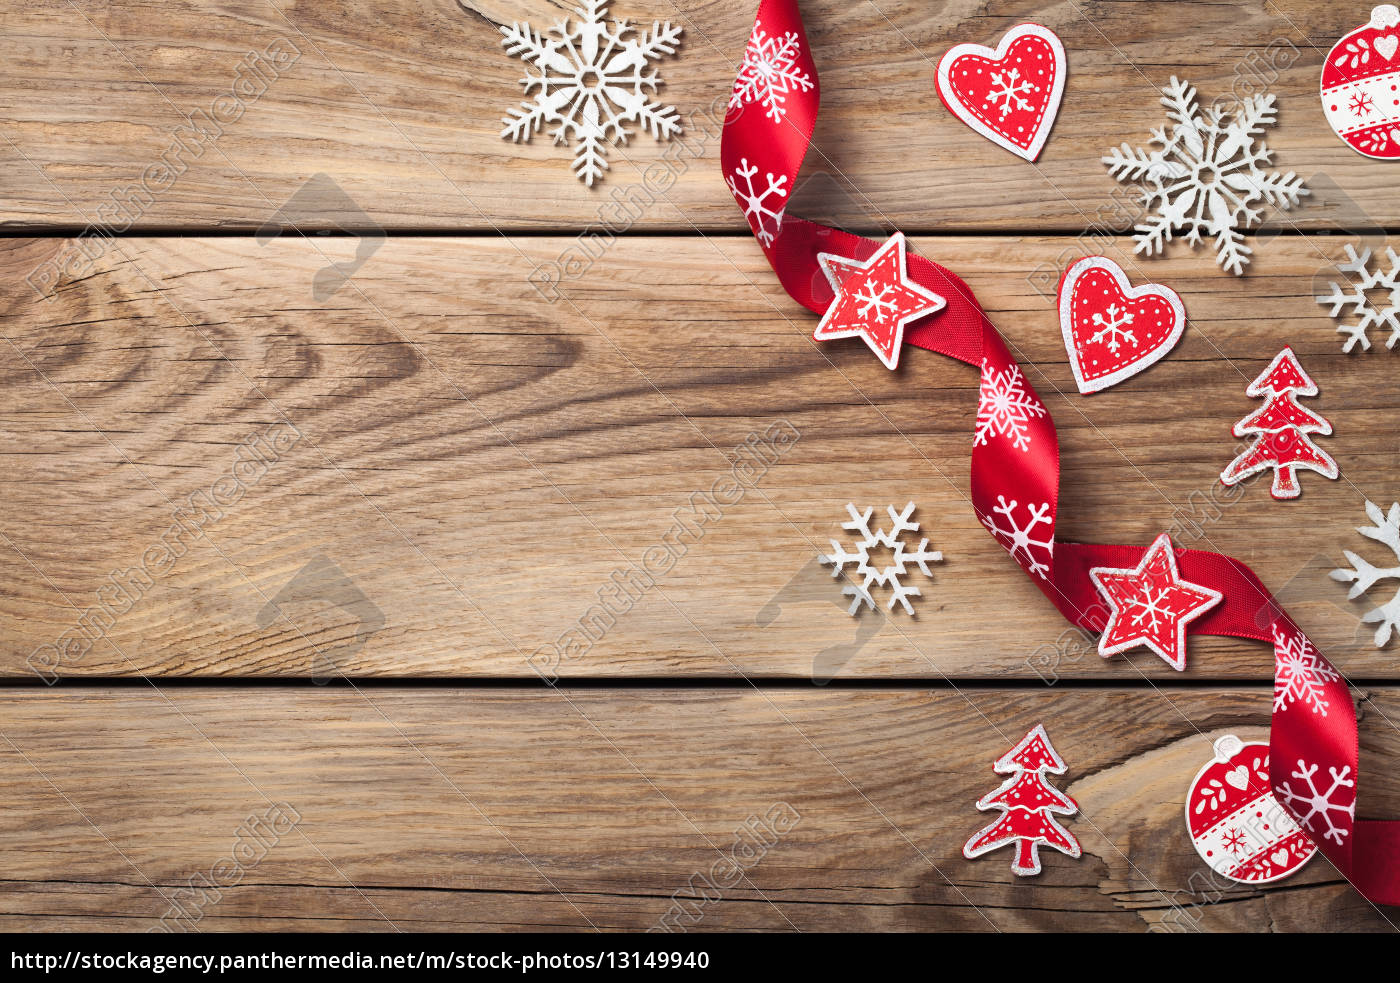 Free Christmas Background Images.Royalty Free Photo 13149940 Christmas Background